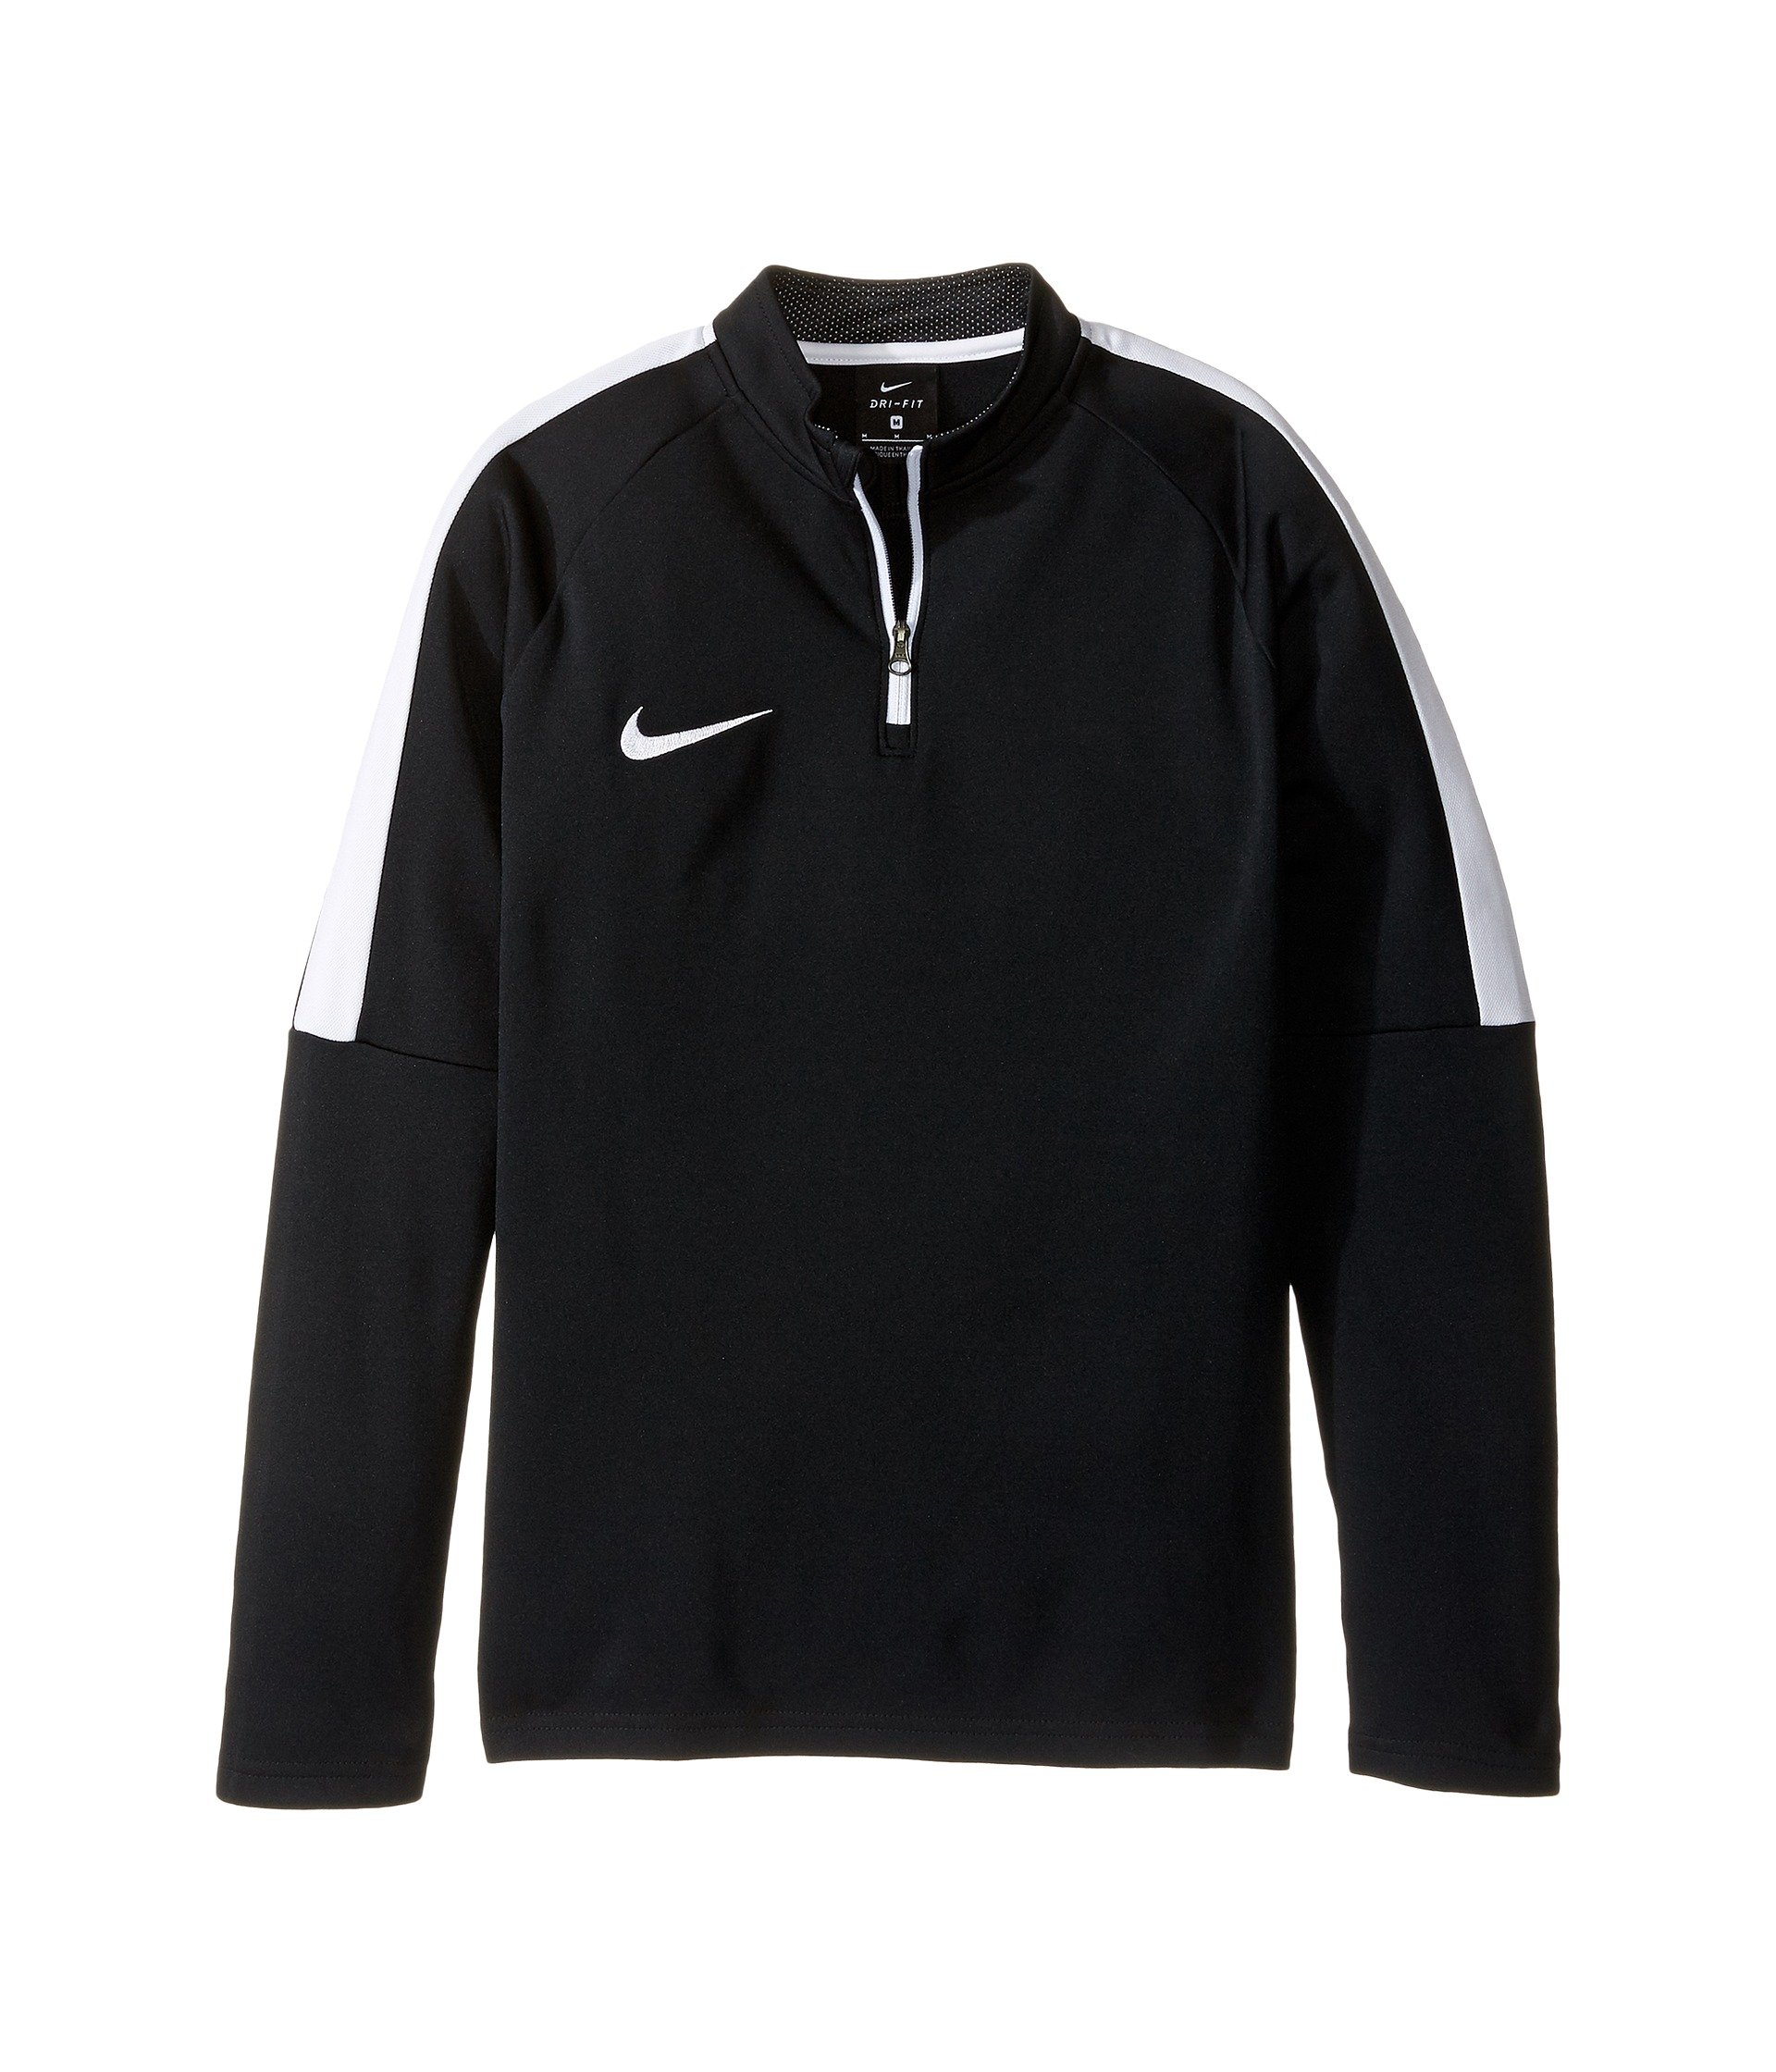 Nike Kids' Dry Academy Drill Soccer Top 1/4 Zip Black Jacket (Large, Black/White)